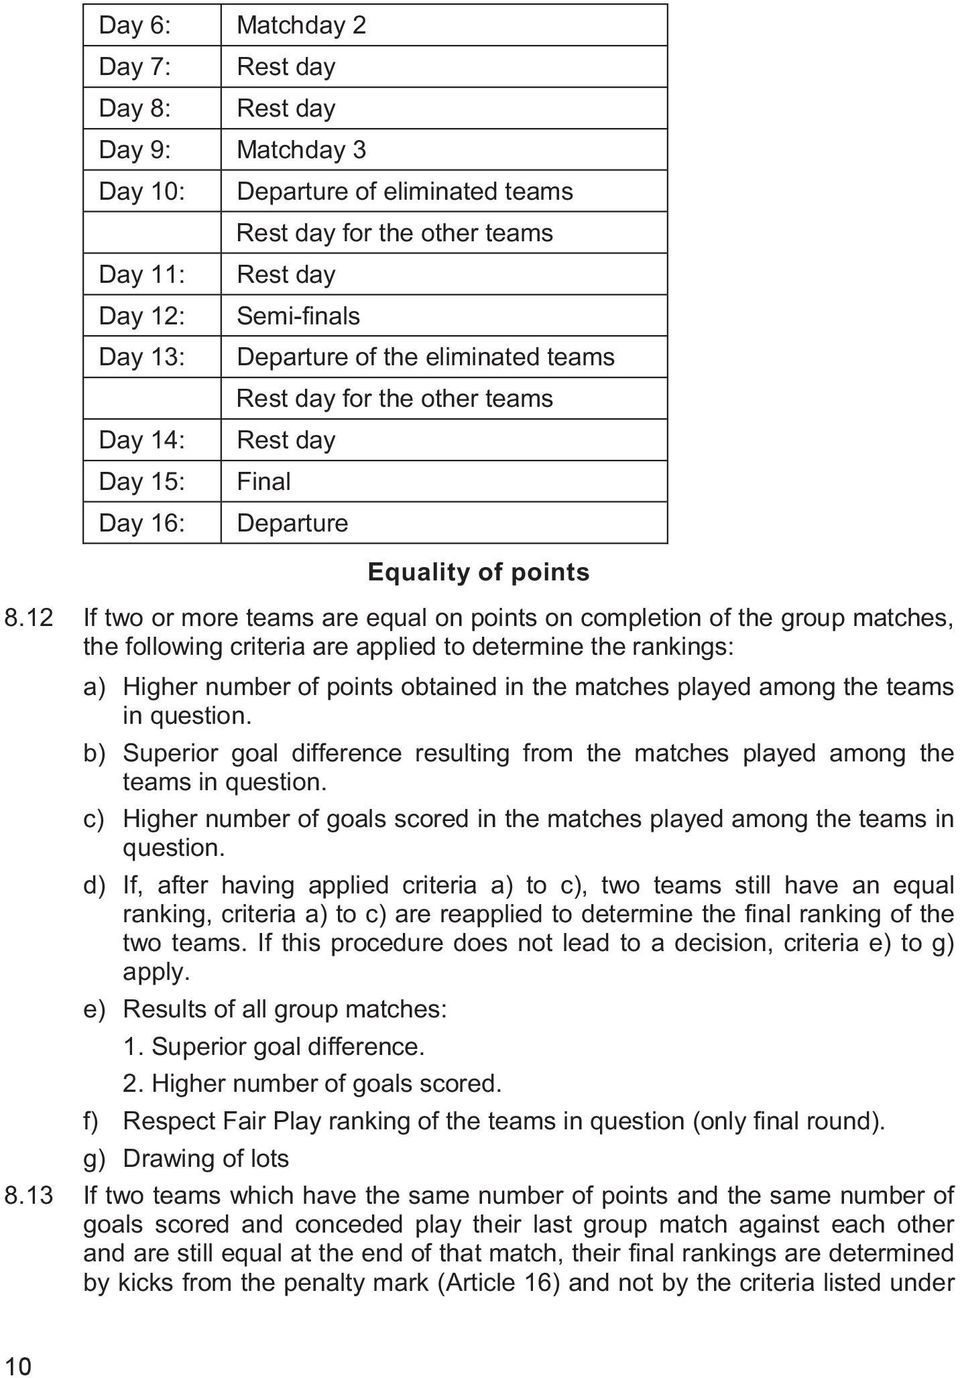 12 If two or more teams are equal on points on completion of the group matches, the following criteria are applied to determine the rankings: a) Higher number of points obtained in the matches played